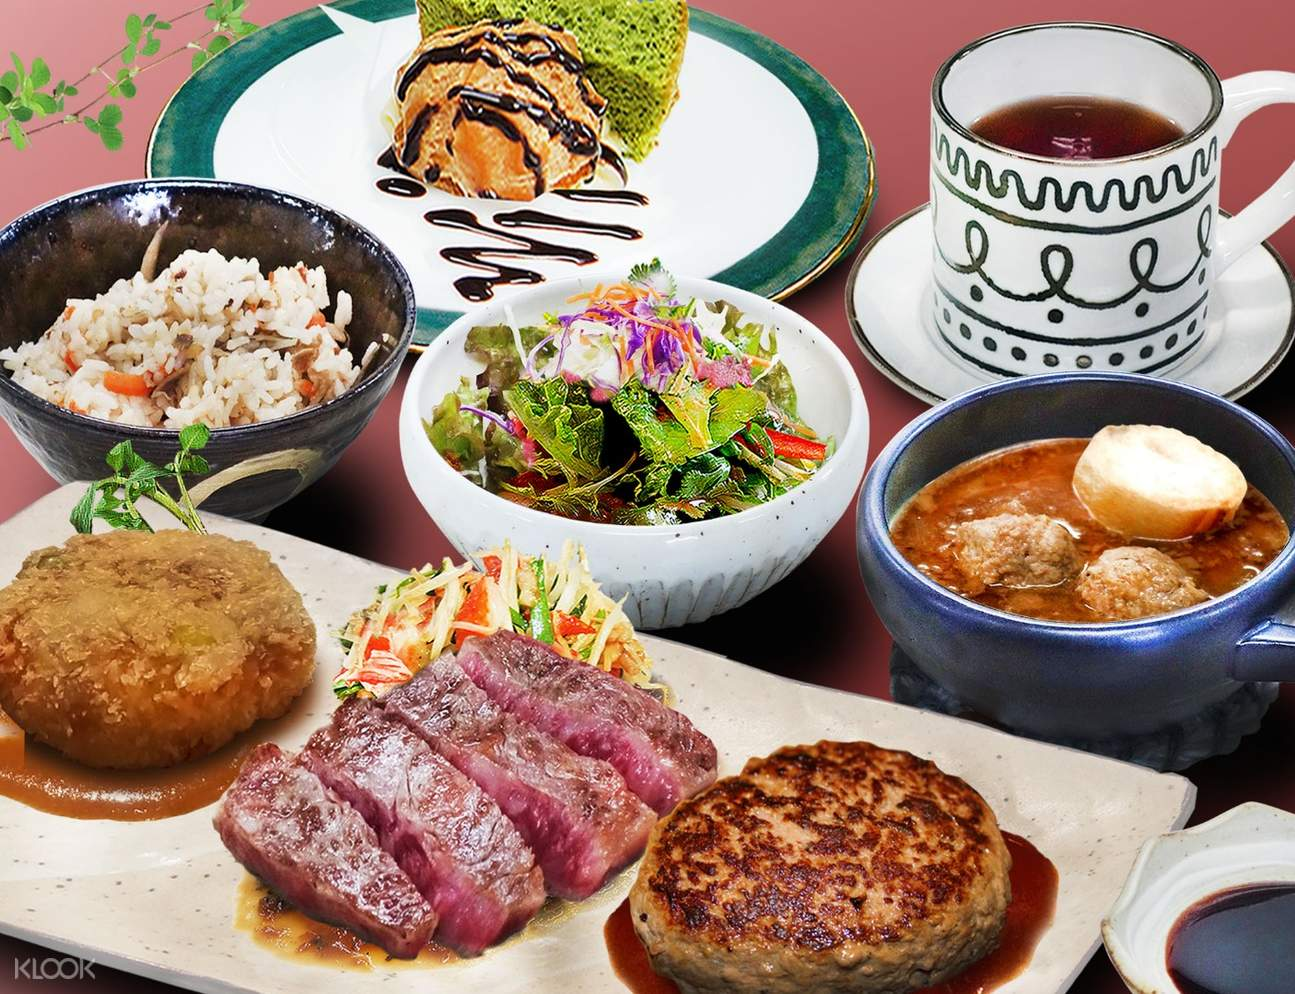 wagyu beef and other japanese dishes on plates